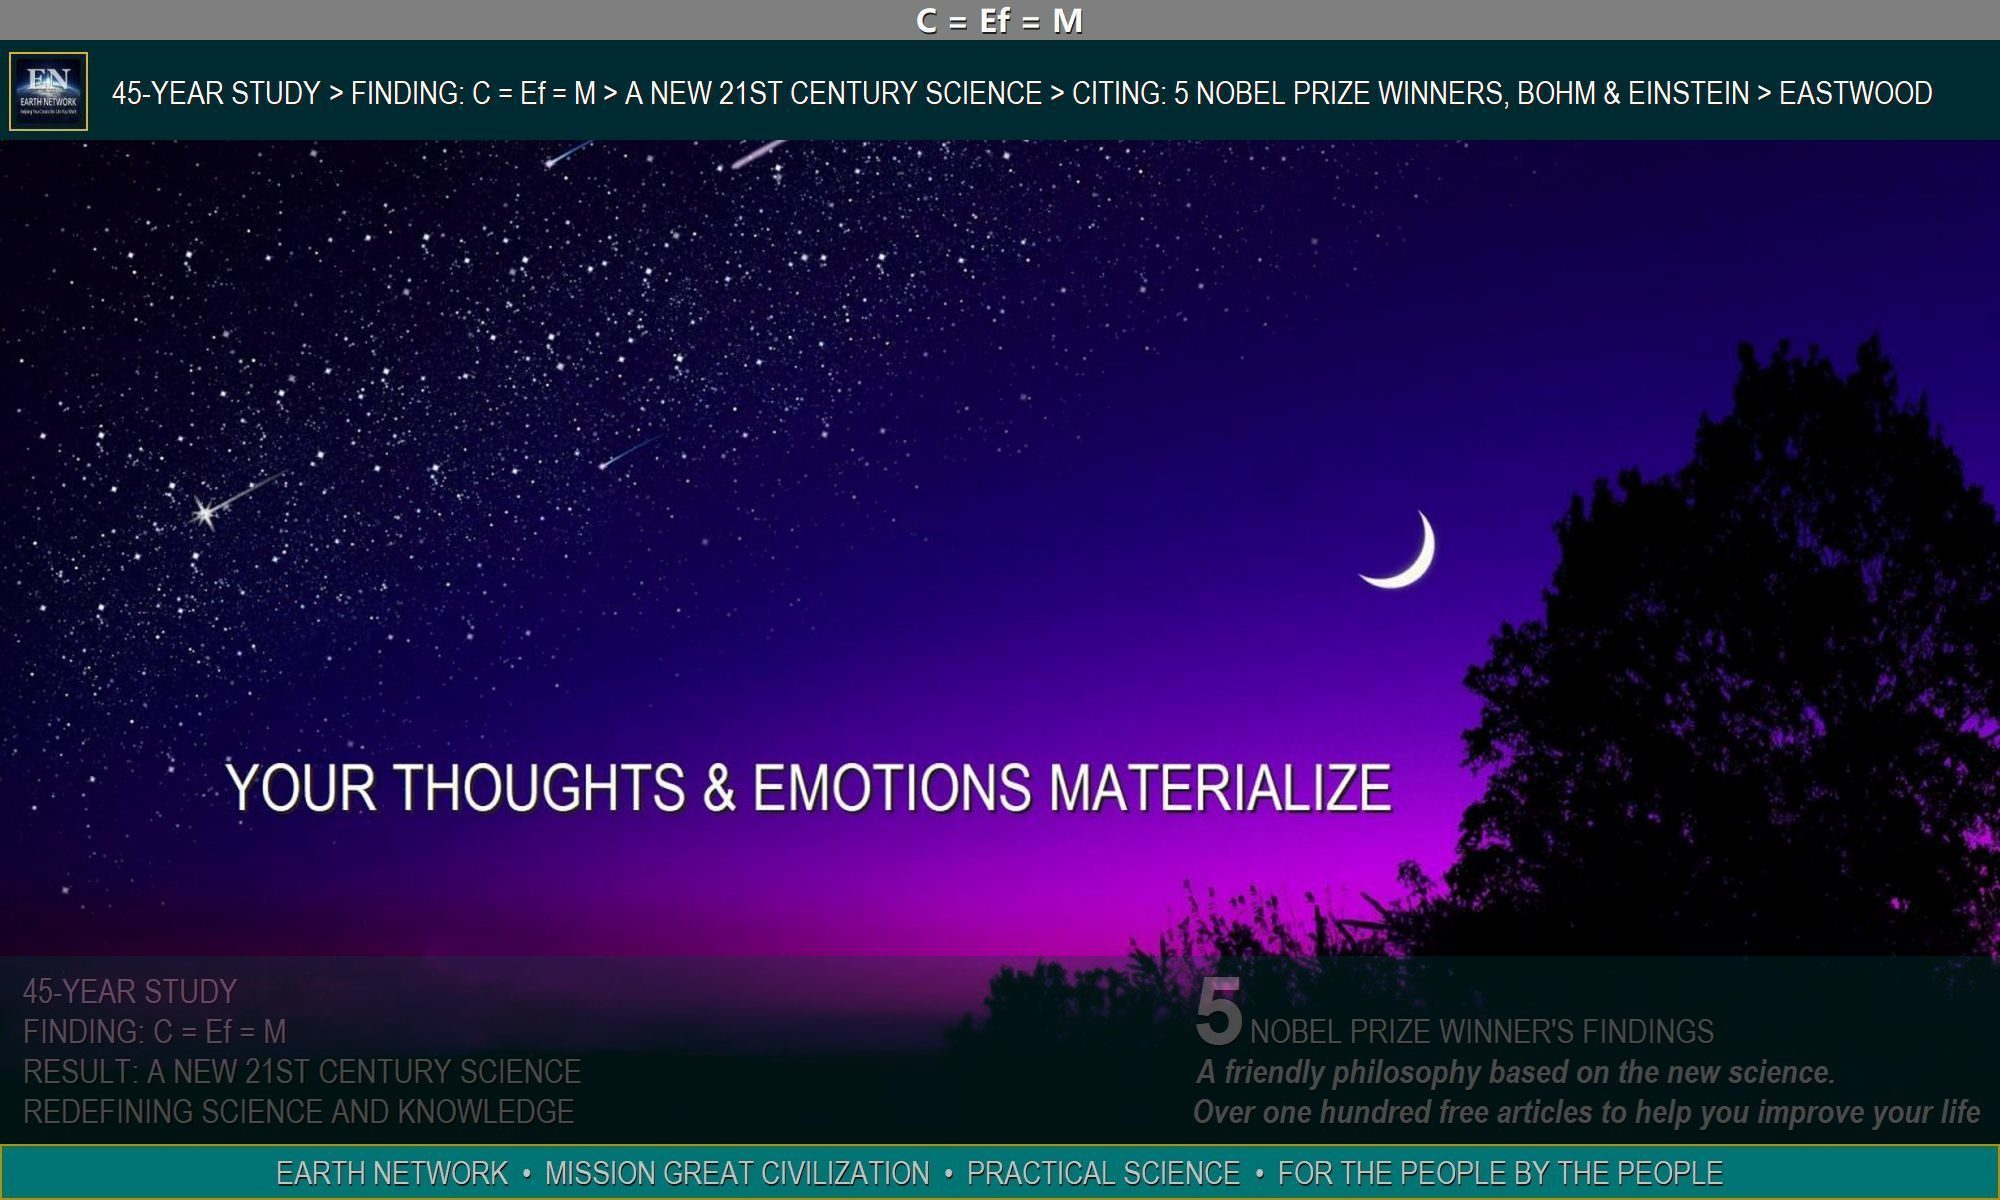 Nigh sky depicts the mystery of metaphysics and how your thoughts and emotions manifest as your life.